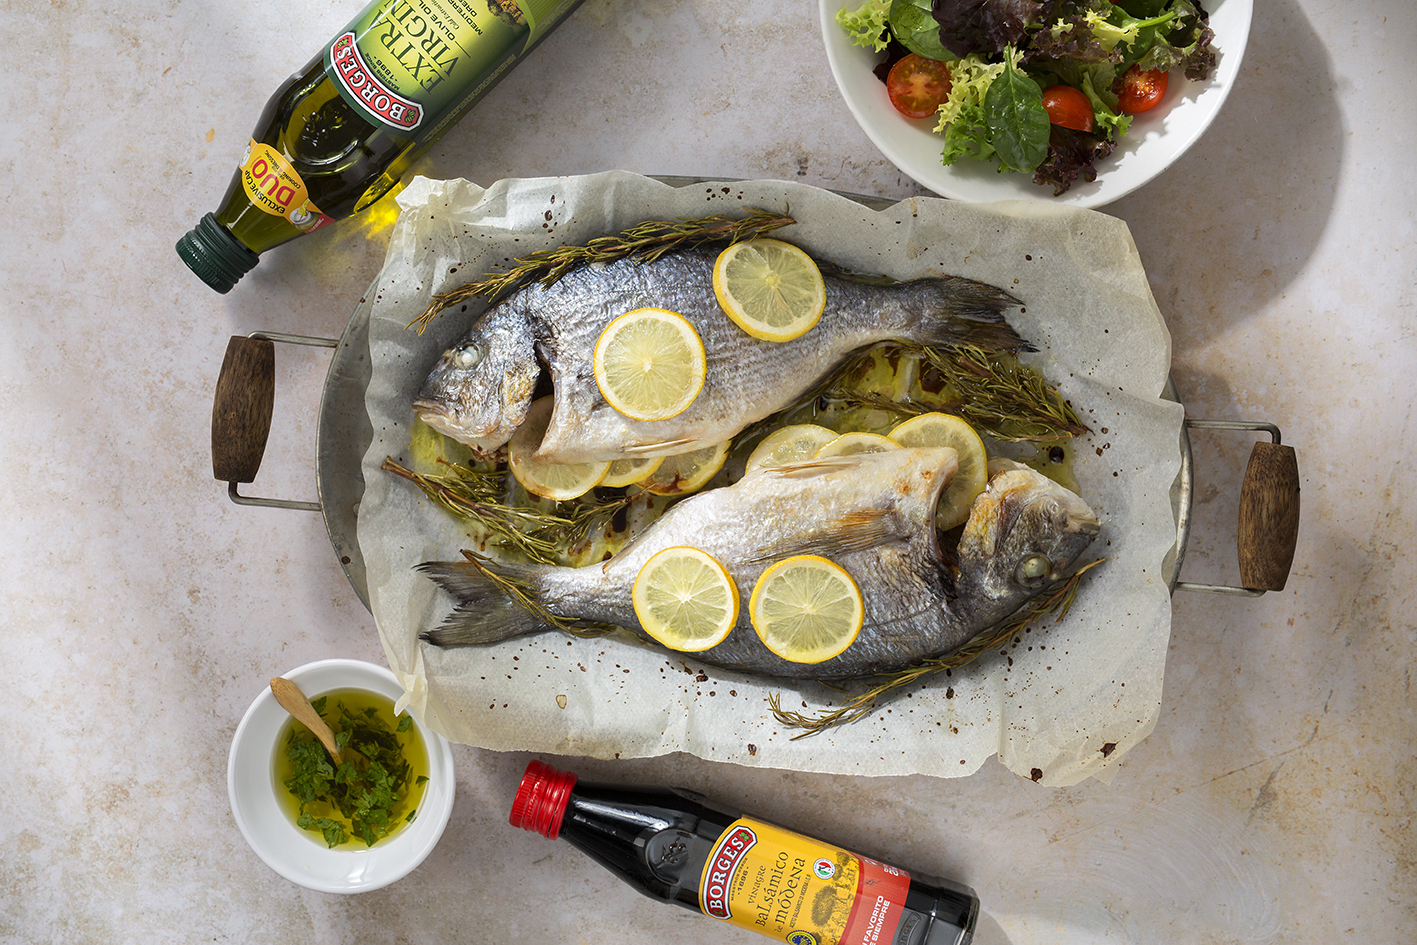 The easiest way to cook fish